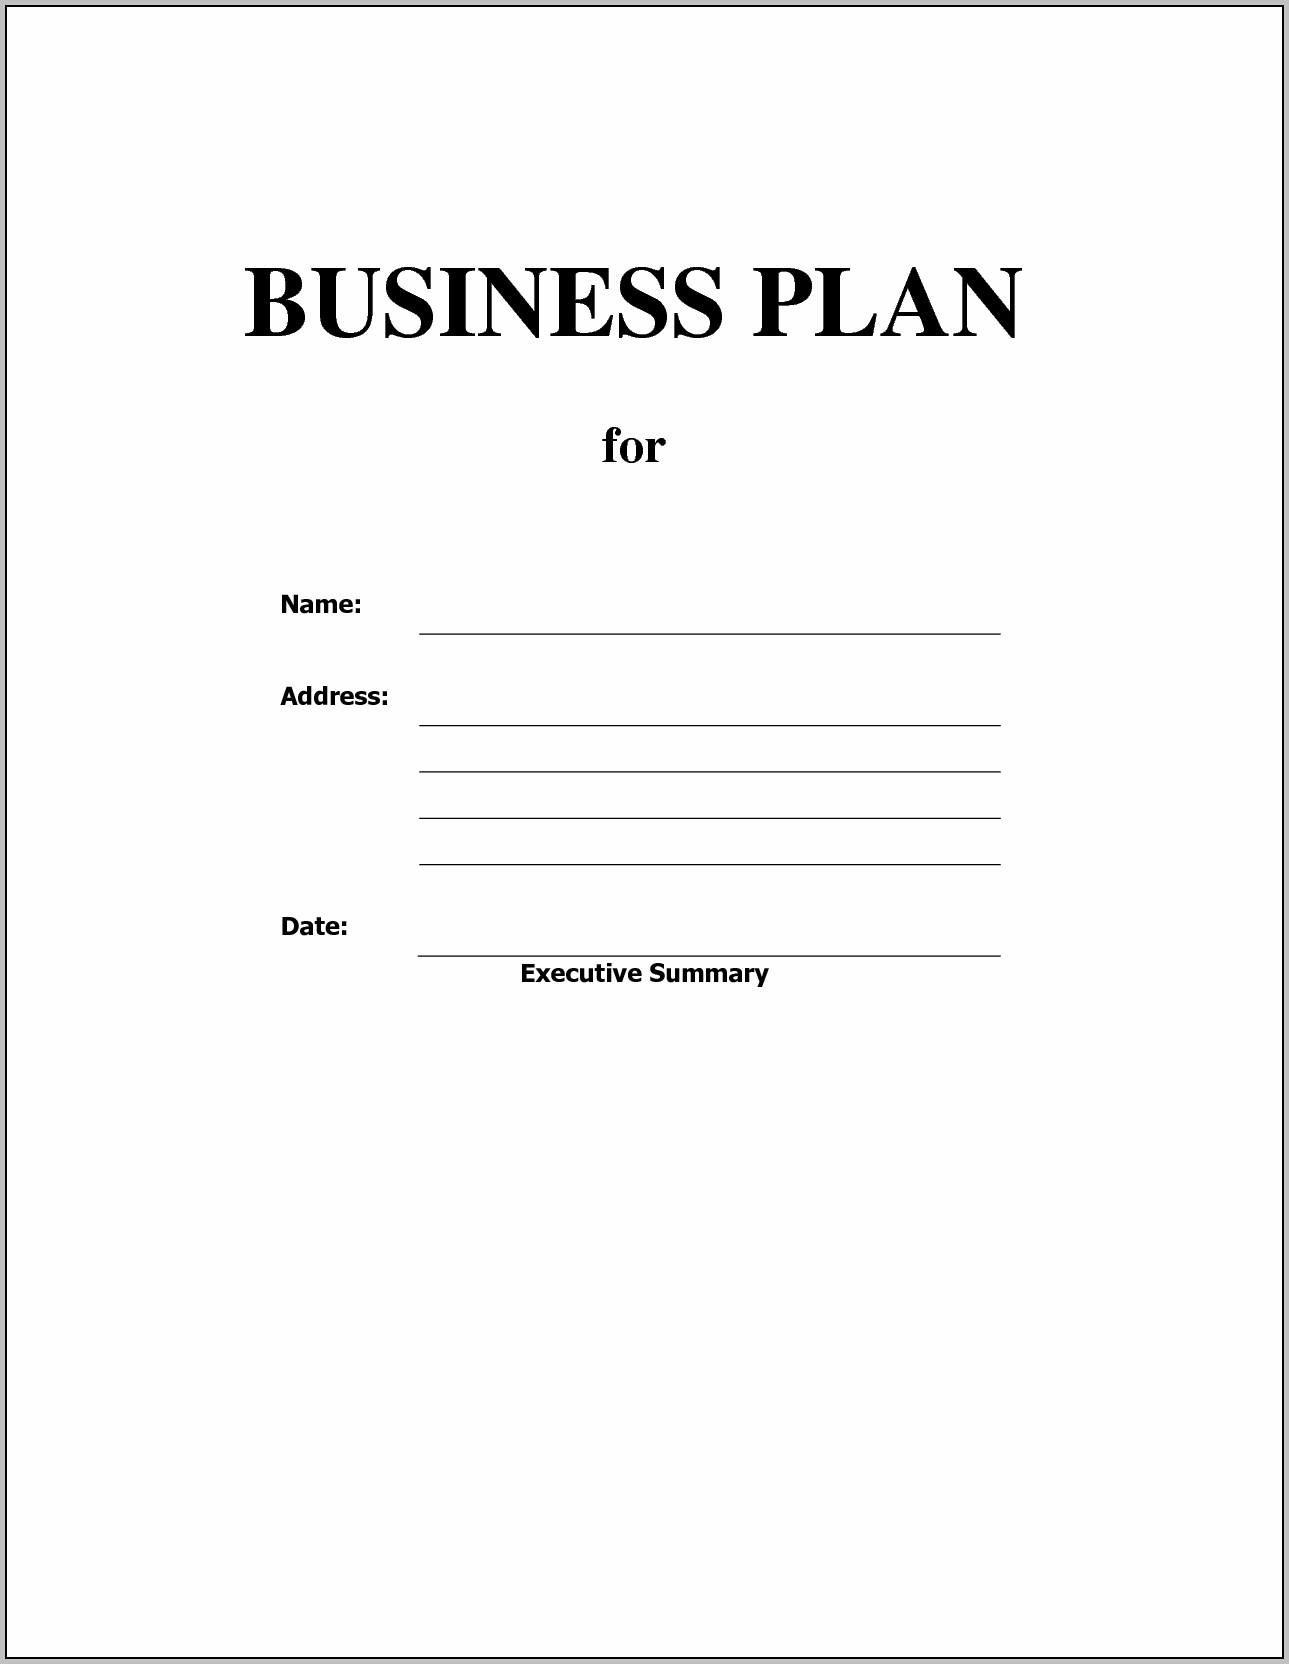 Free Business Plan Non Profit With Blank Business Plan Template Word